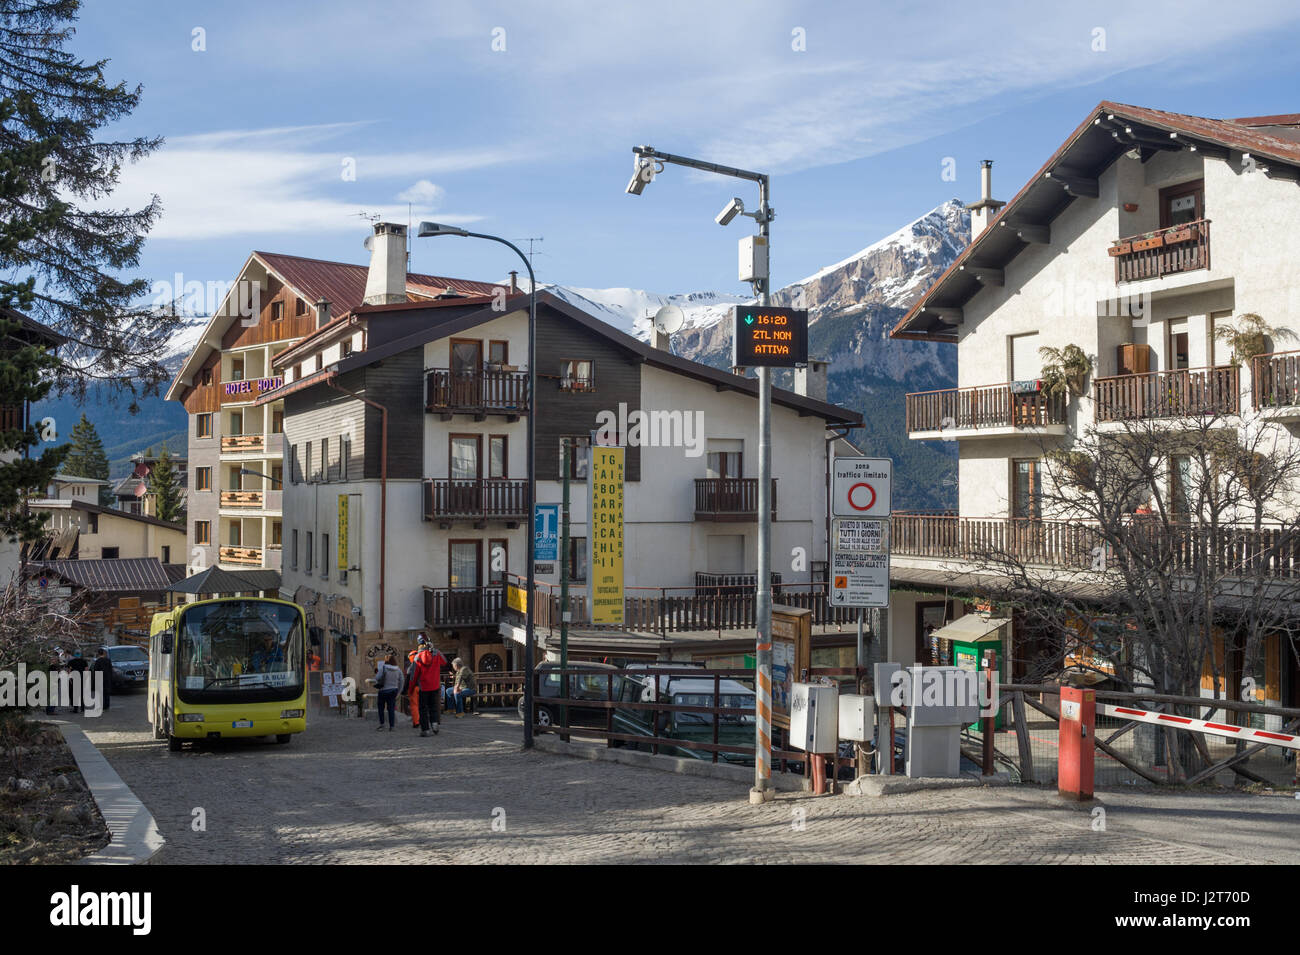 A local bus and accomodation in Sauze d'Oulx ski resort, Turin, Piedmont, Italy - Stock Image